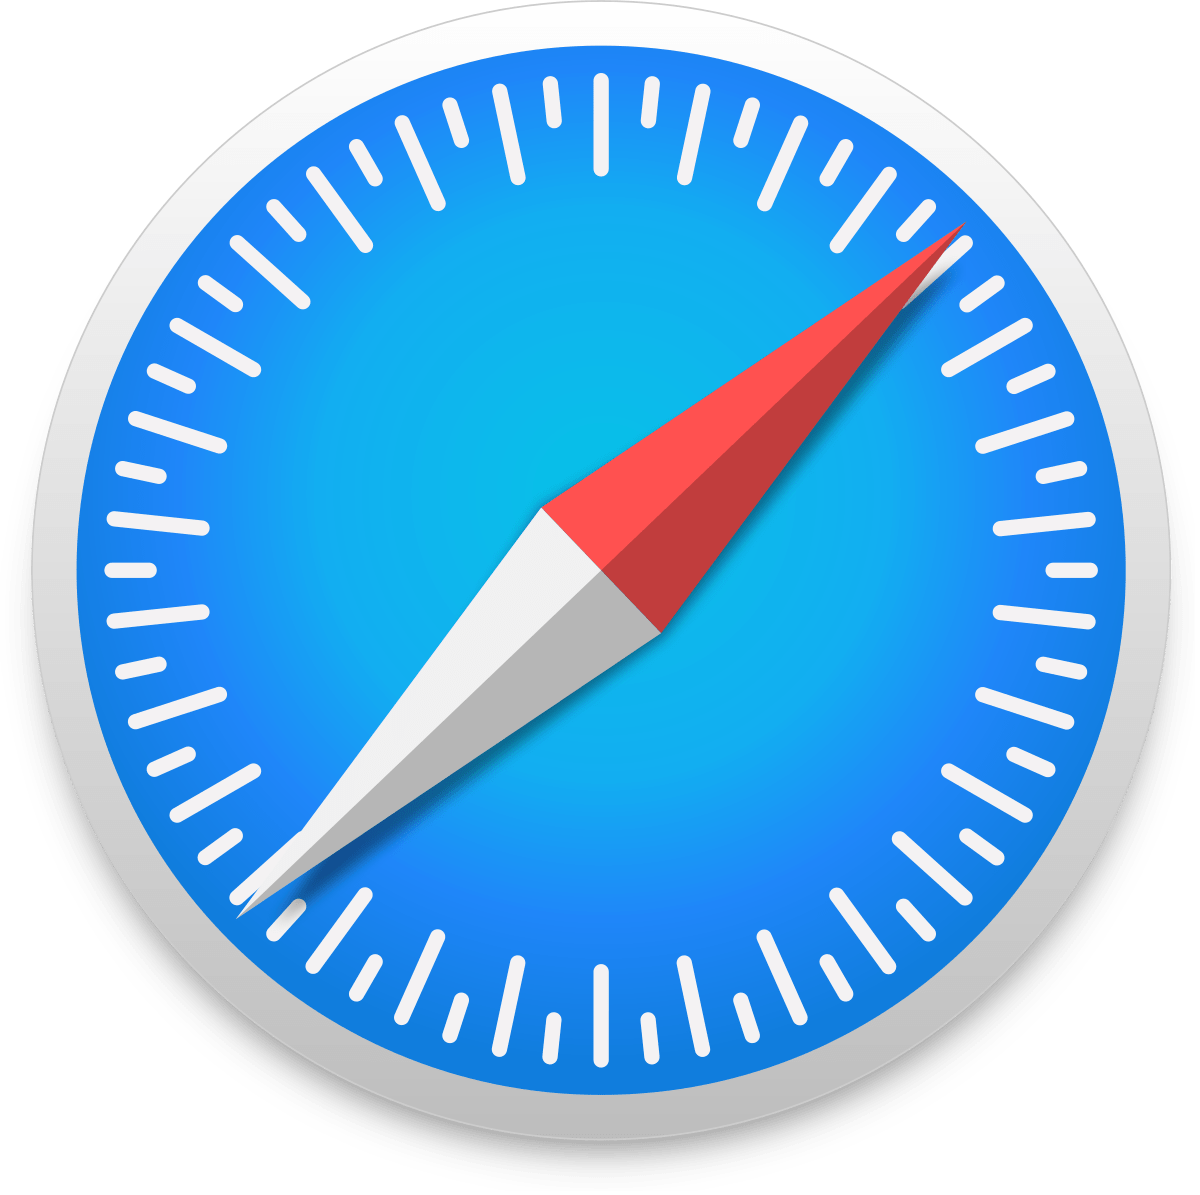 Safari browser logo : a blue compass with a red and white needle